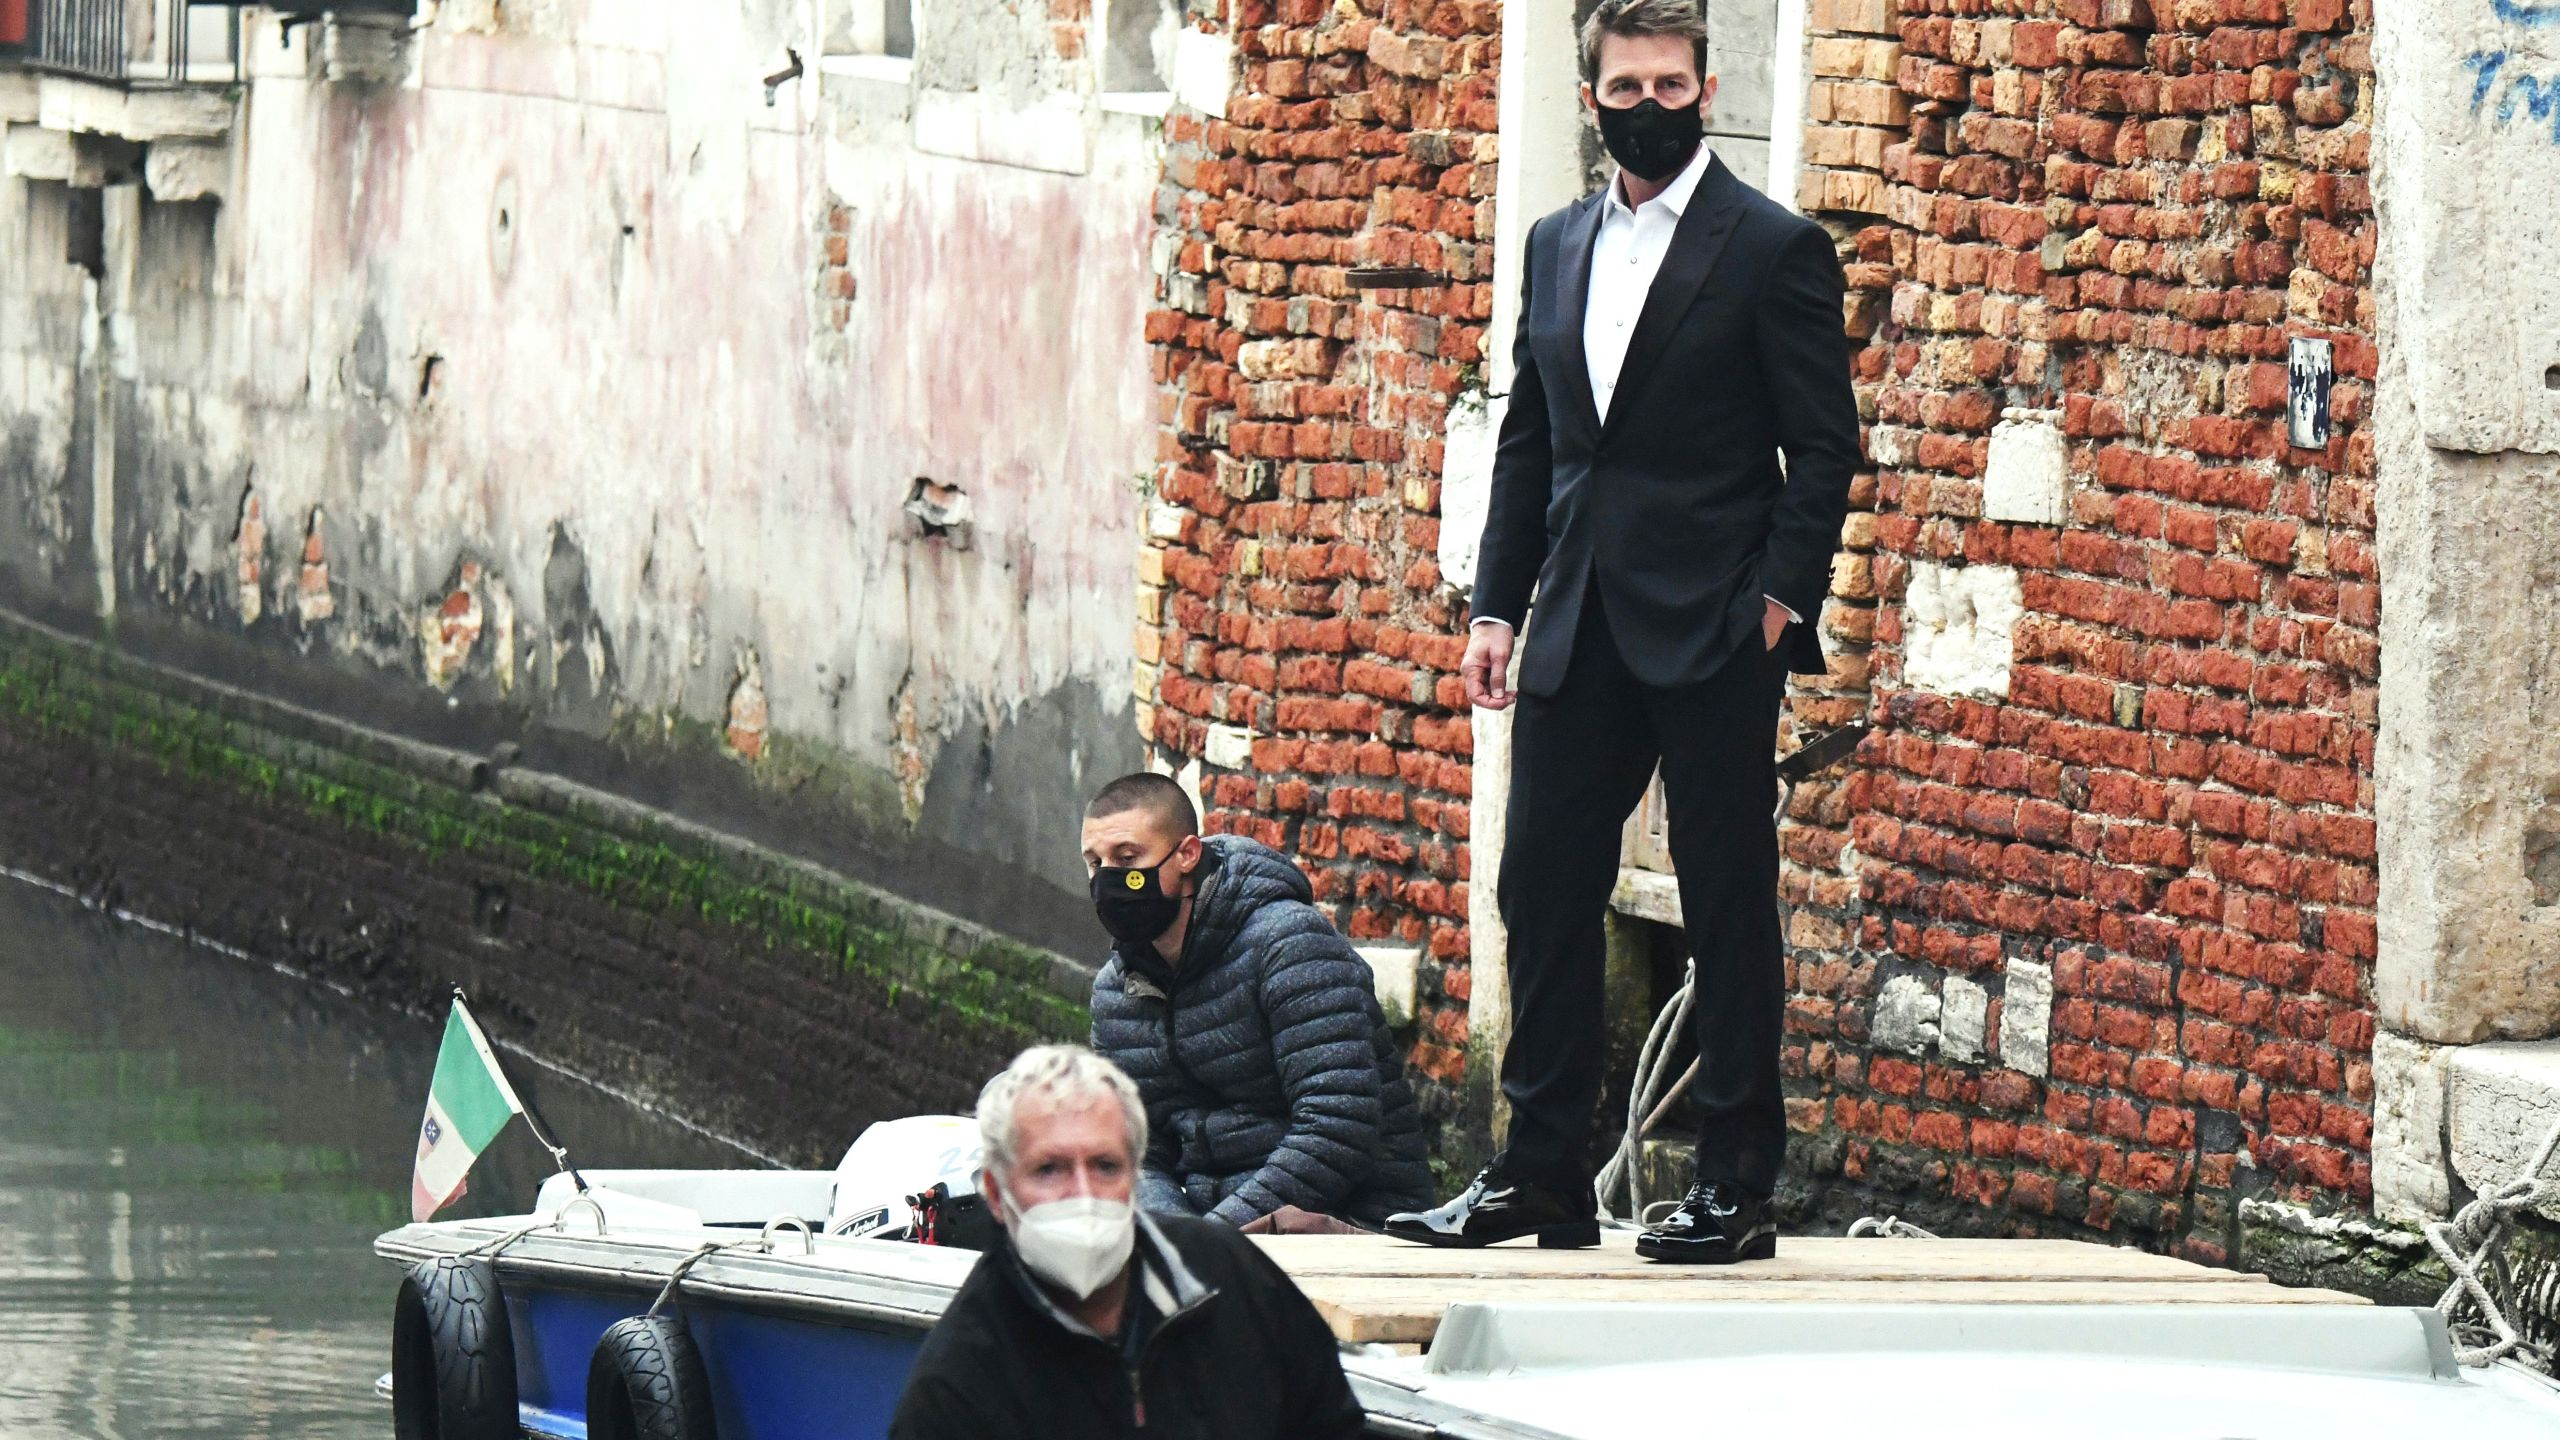 """U.S. actor Tom Cruise stands on a boat during the shooting of the movie """"Mission Impossible: Lybra"""" in Venice on Oct. 20, 2020. (ANDREA PATTARO / AFP via Getty Images)"""